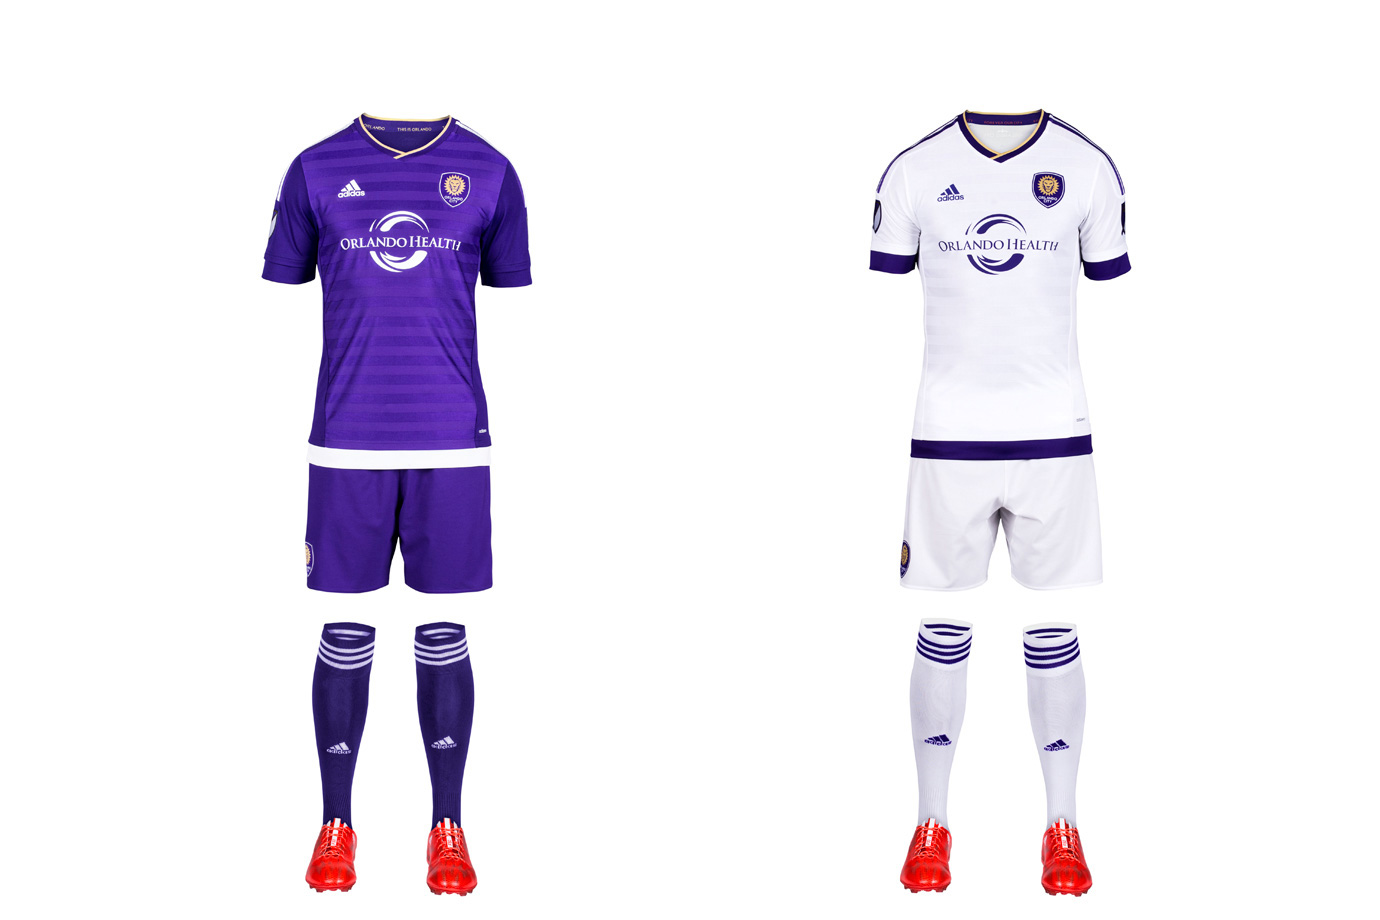 "The Lions' love for purple is welcome in a league featuring so many similar looks. But it didn't result in creative inaugural kits. The home uniform features more up-close details, like ""jacquard engineered banding…representing Orlando City's transition to a new era"" and even the club's old USL logo inside. The mono-white secondary has colored hoops on the waist and sleeves and includes more small symbols and slogans. But it's still just another white set. The answer is obvious—swap the socks. The ""Chelsea"" look is underrated. White hosiery at home and purple on the road would make all the difference."